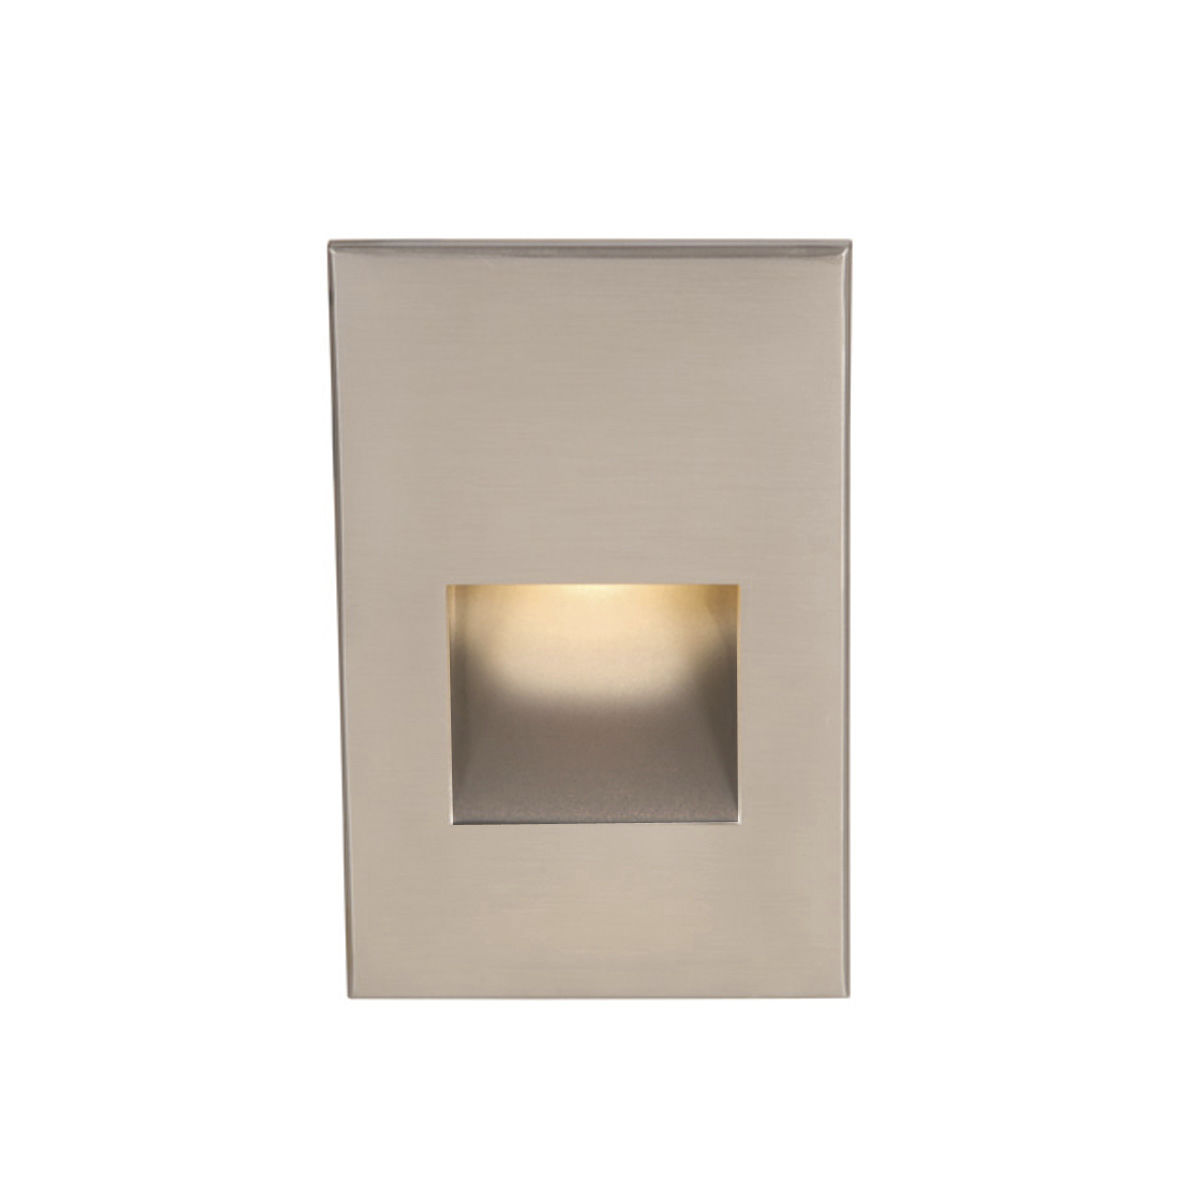 Recessed wall light fixture led rectangular outdoor wl 200 recessed wall light fixture led rectangular outdoor arubaitofo Gallery